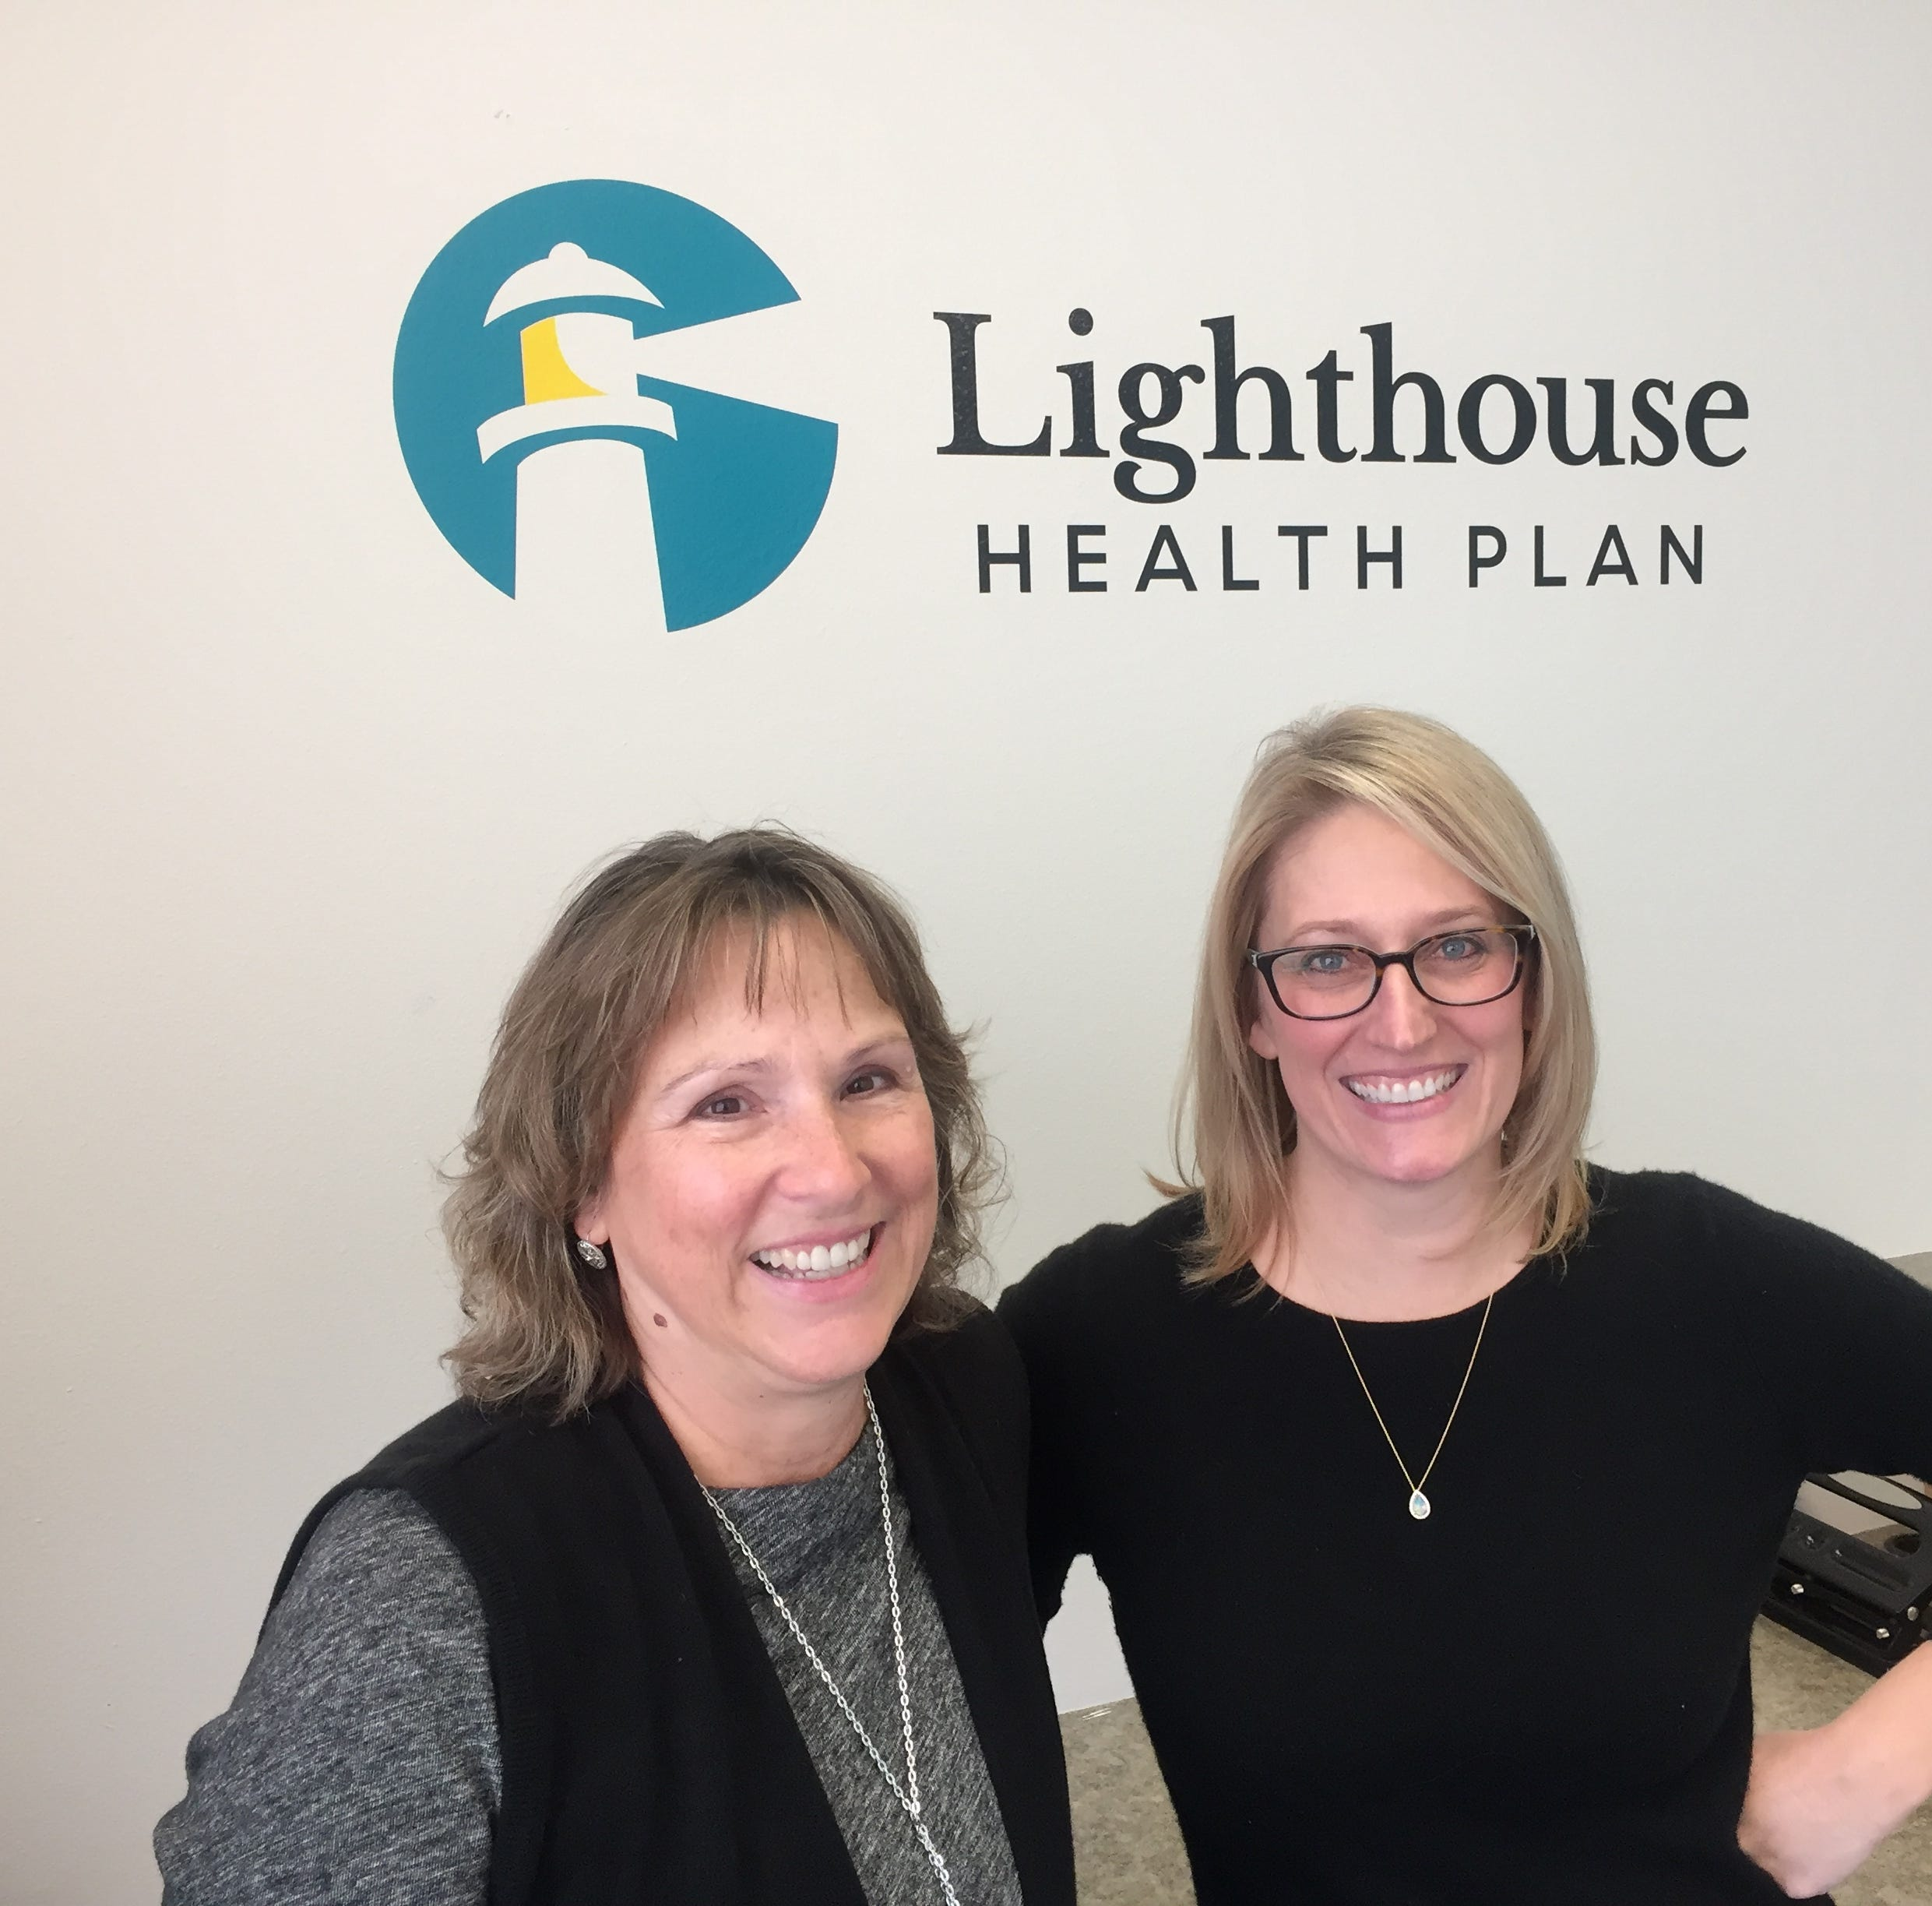 Medicaid patients have Pensacola-based, doctor-run health care option in Lighthouse Health Plan